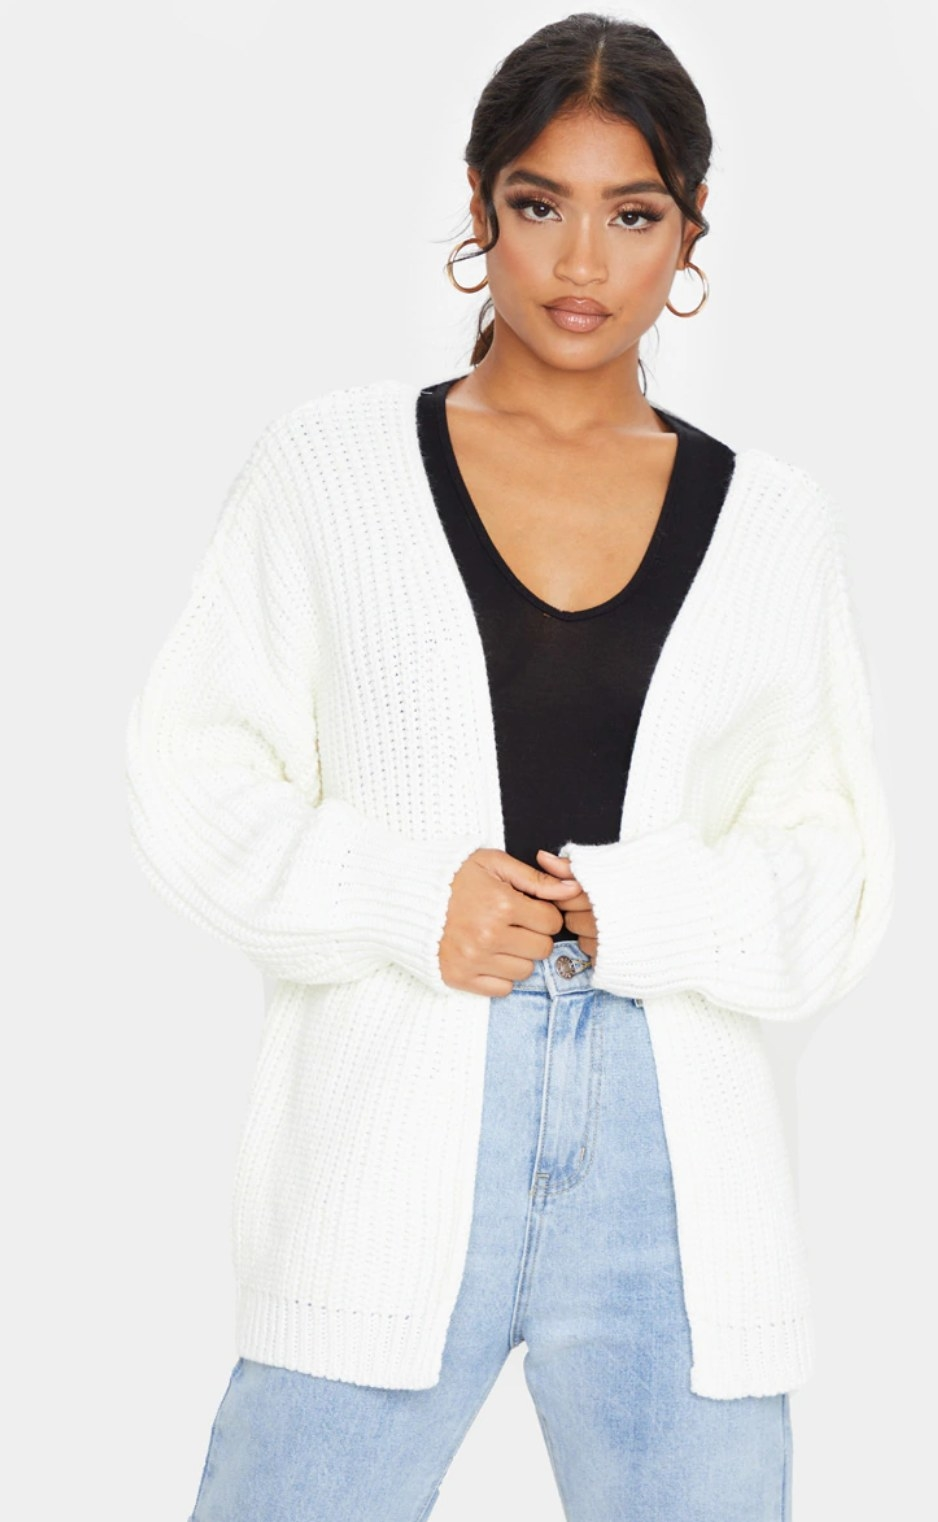 model wearing the white slouchy cardigan over a black top and blue jeans